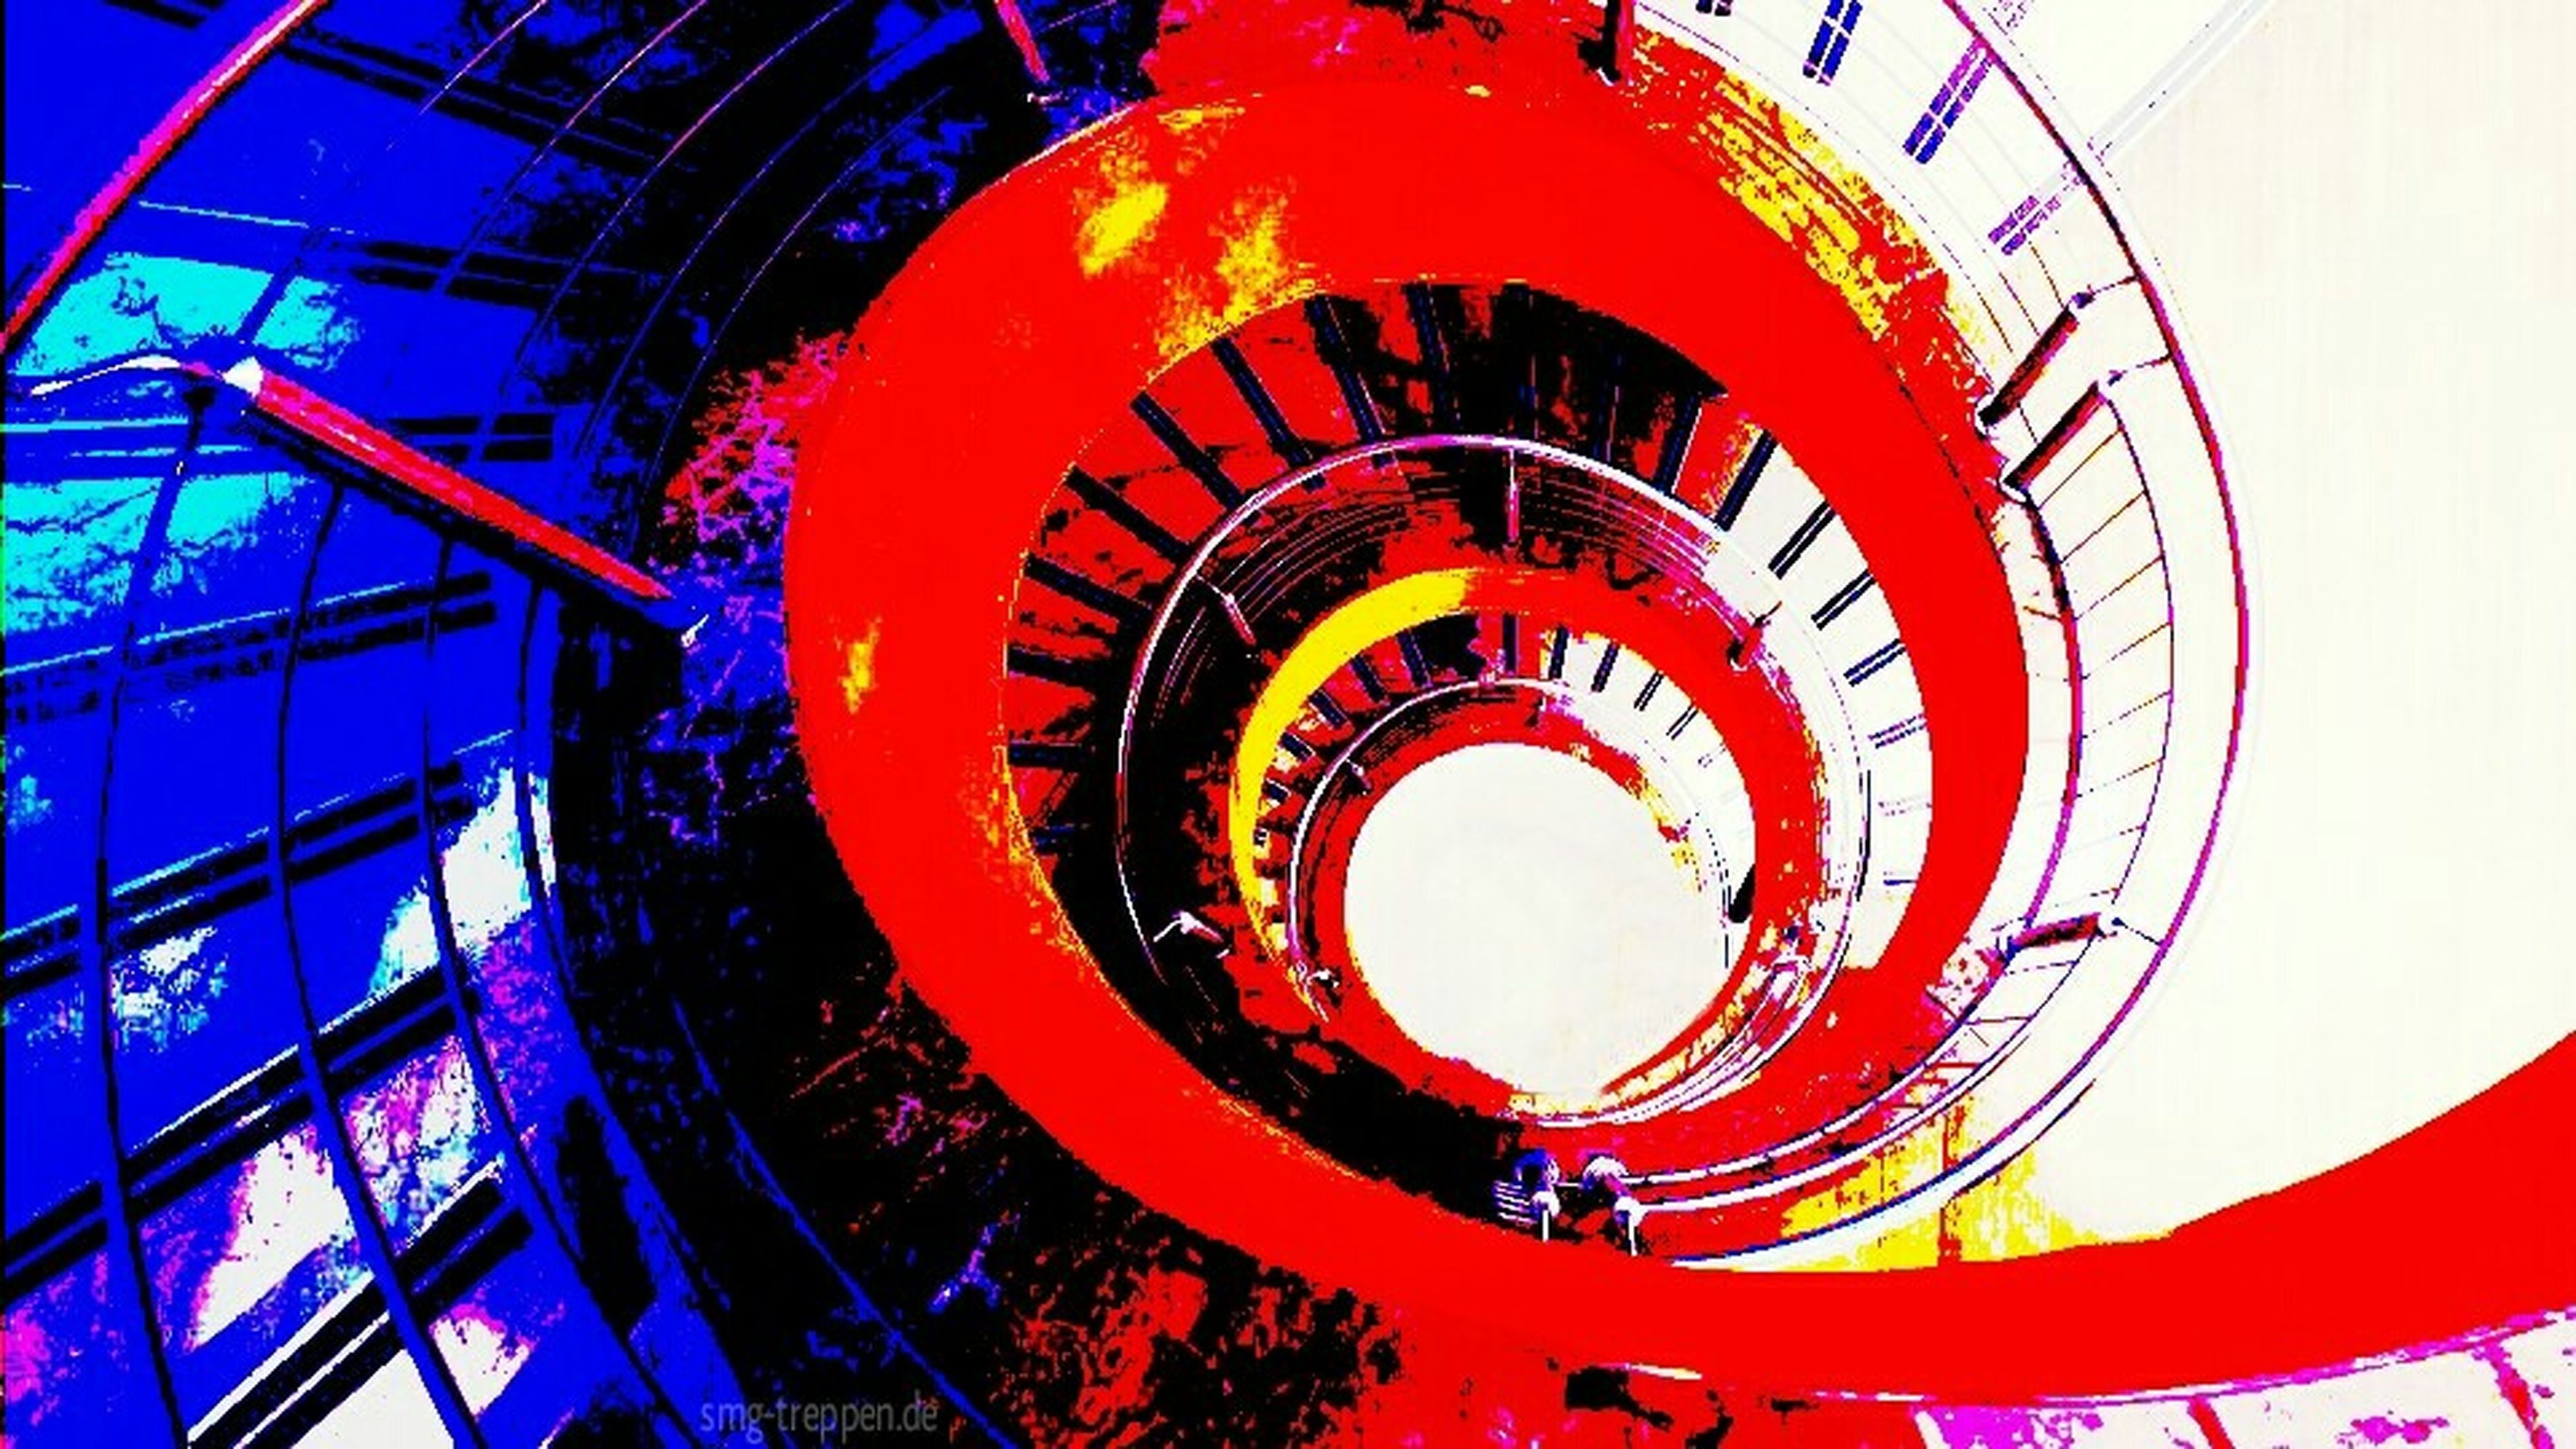 spiral, indoors, spiral staircase, built structure, staircase, steps and staircases, steps, architecture, low angle view, railing, pattern, circle, design, ceiling, geometric shape, red, directly below, metal, blue, no people